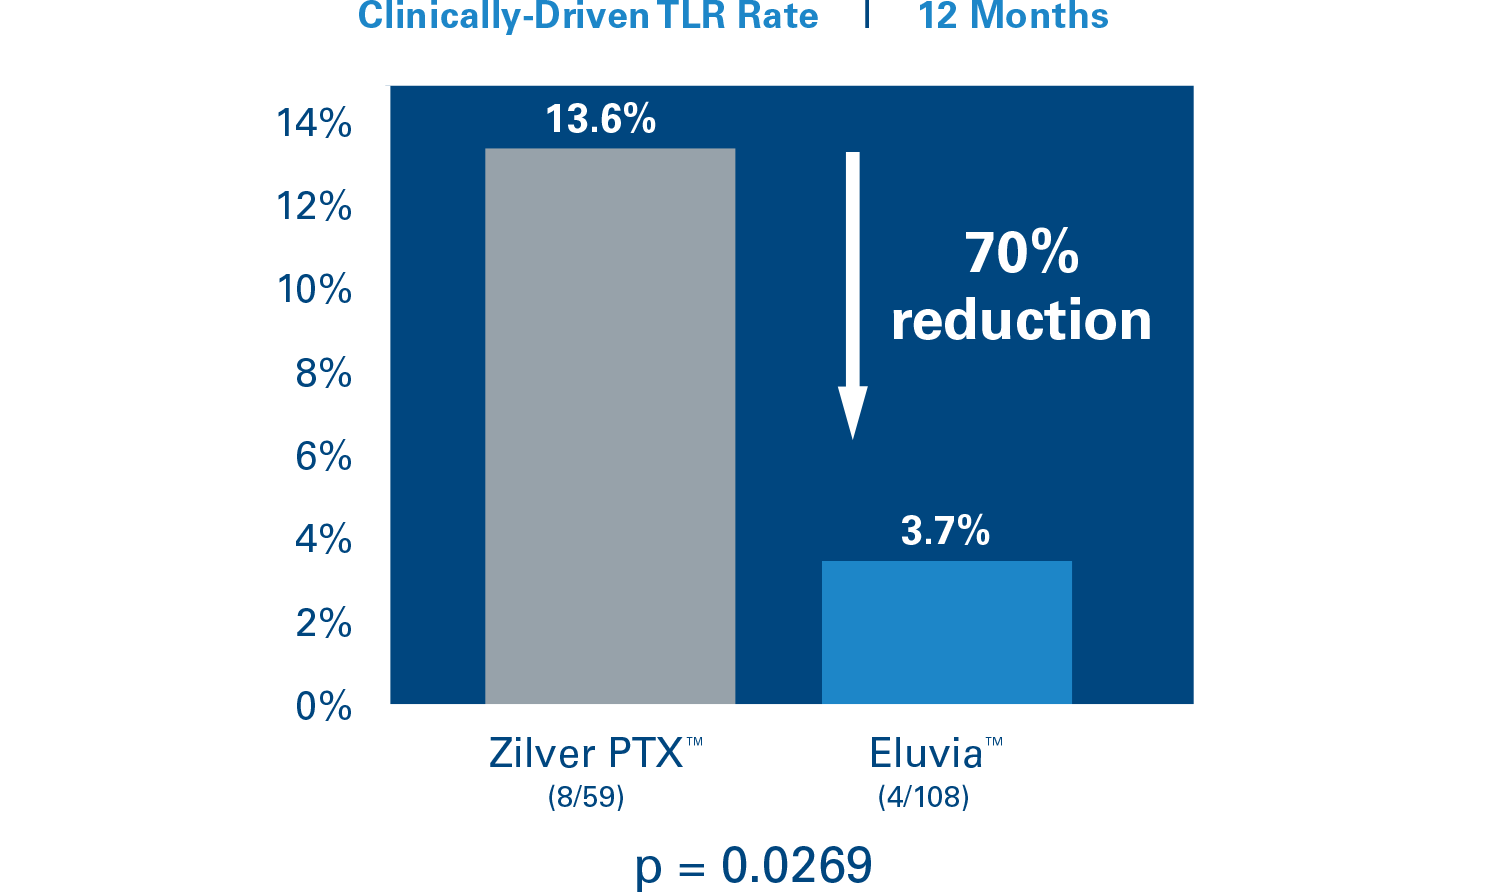 Eluvia demonstrated a statistically significant reduction in TLR of greater than 70% in diabetic patients